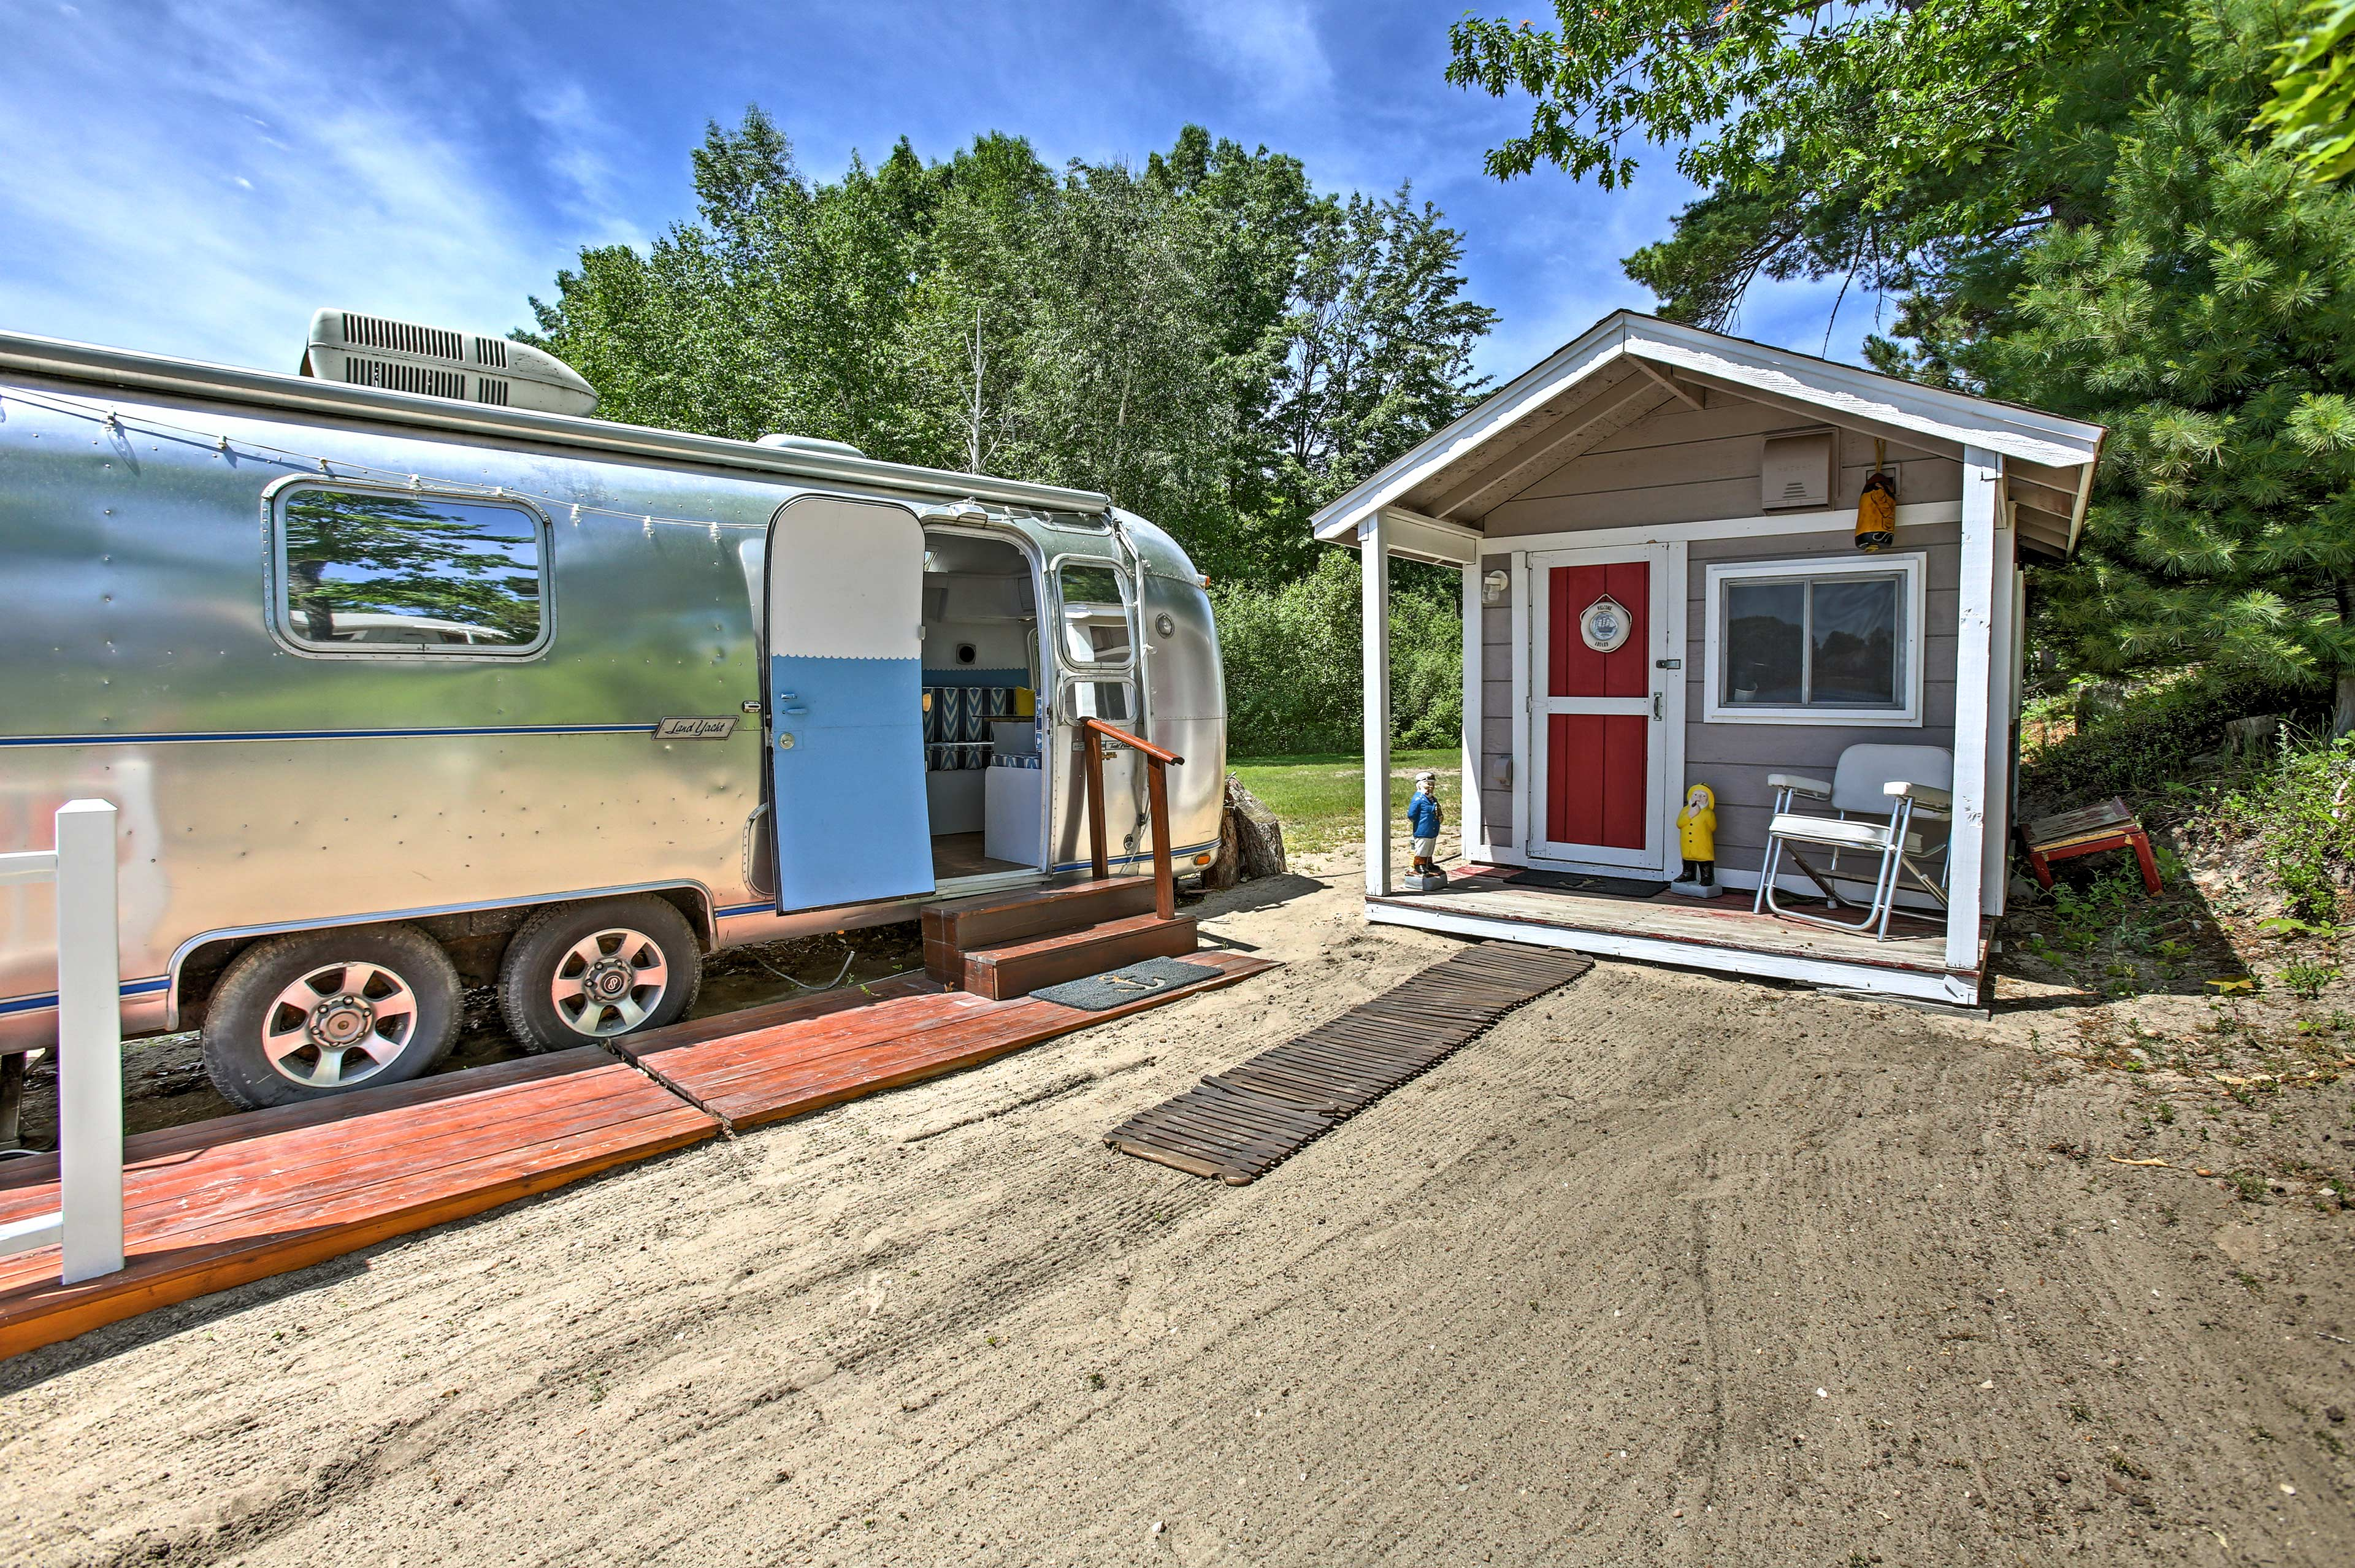 This airstream, located next to the bath house is not for guest use.